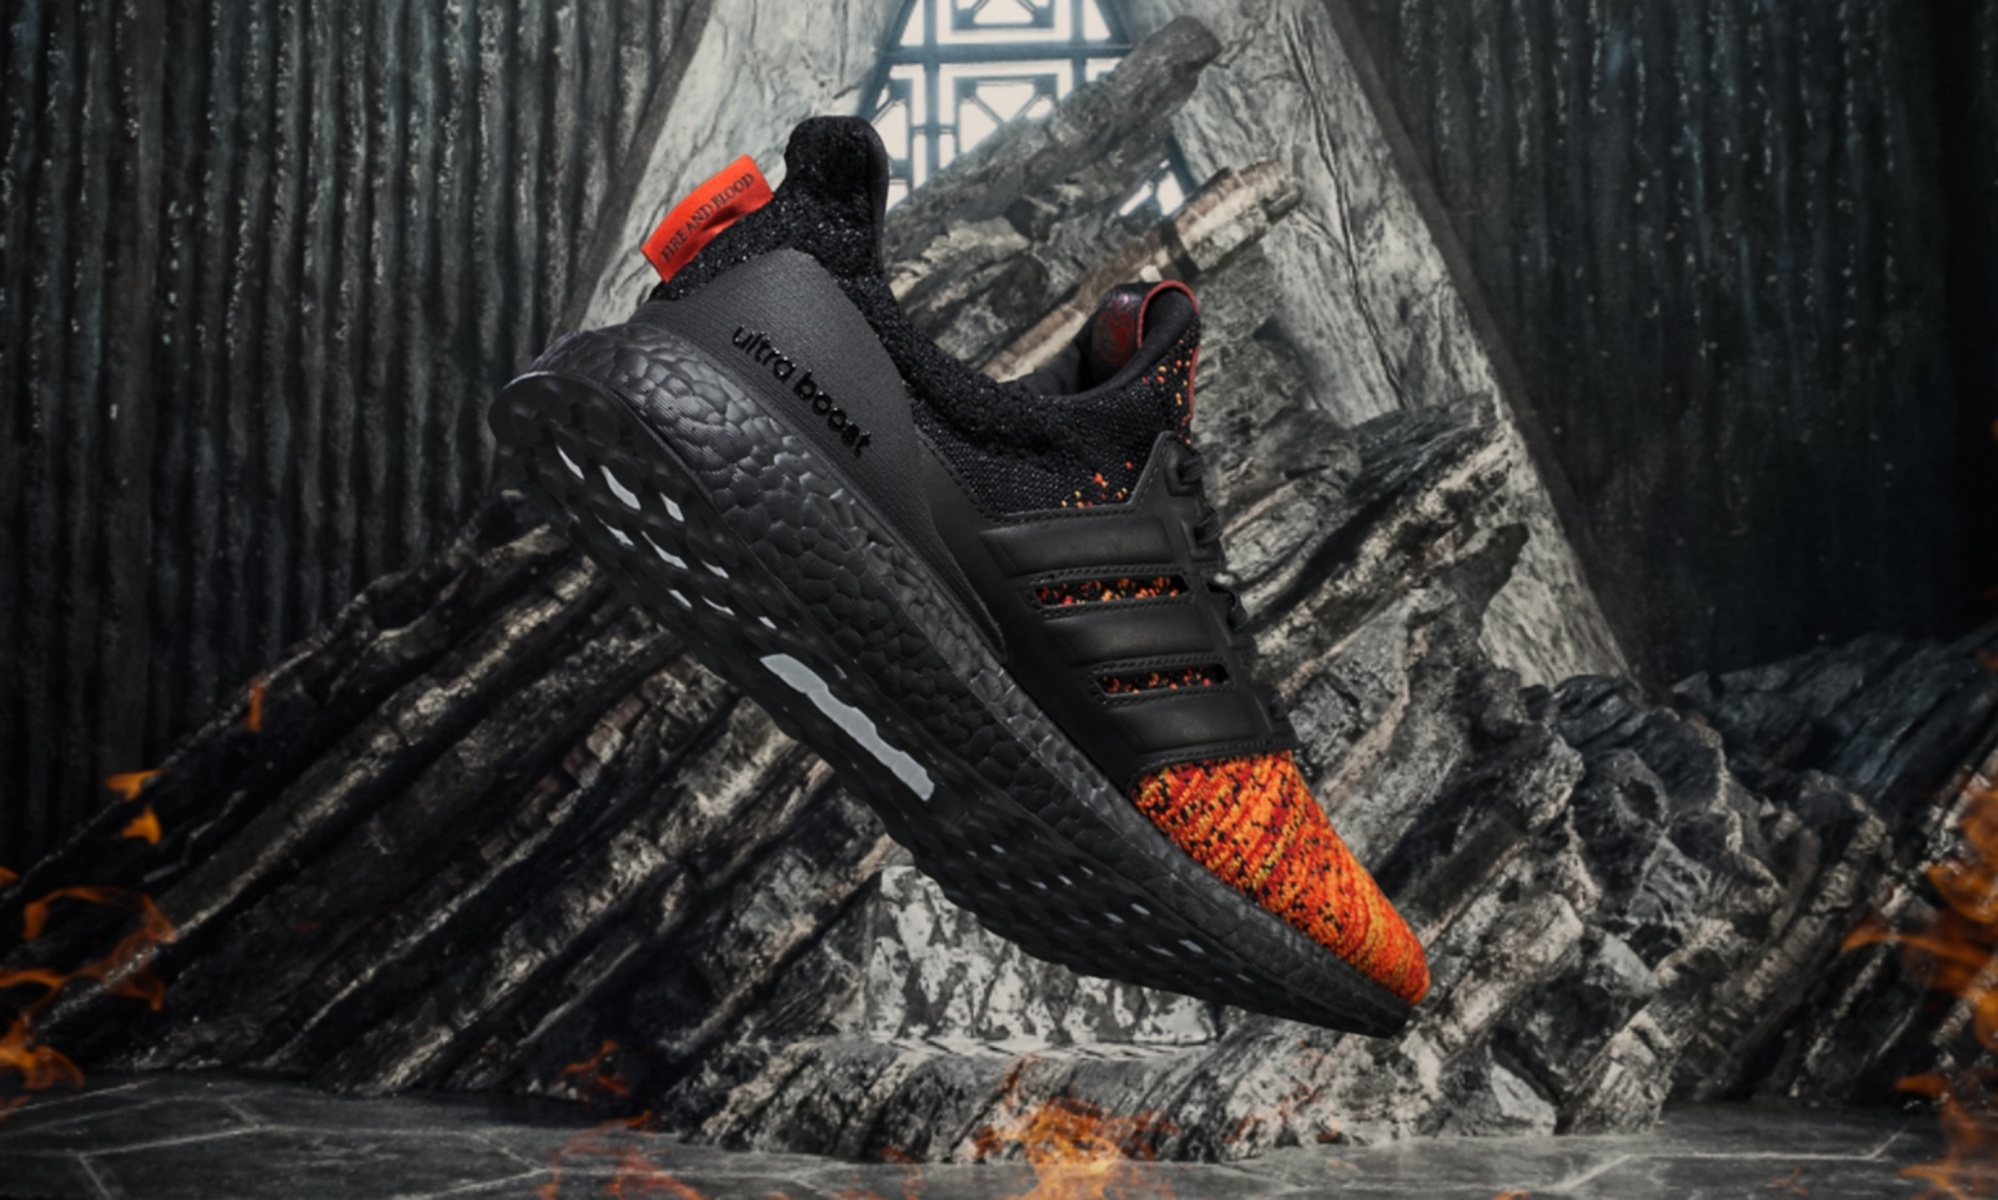 86529a1e4 Adidas X Game Of Thrones Ultra Boost Targaryen Dead Stock Sneakerblog